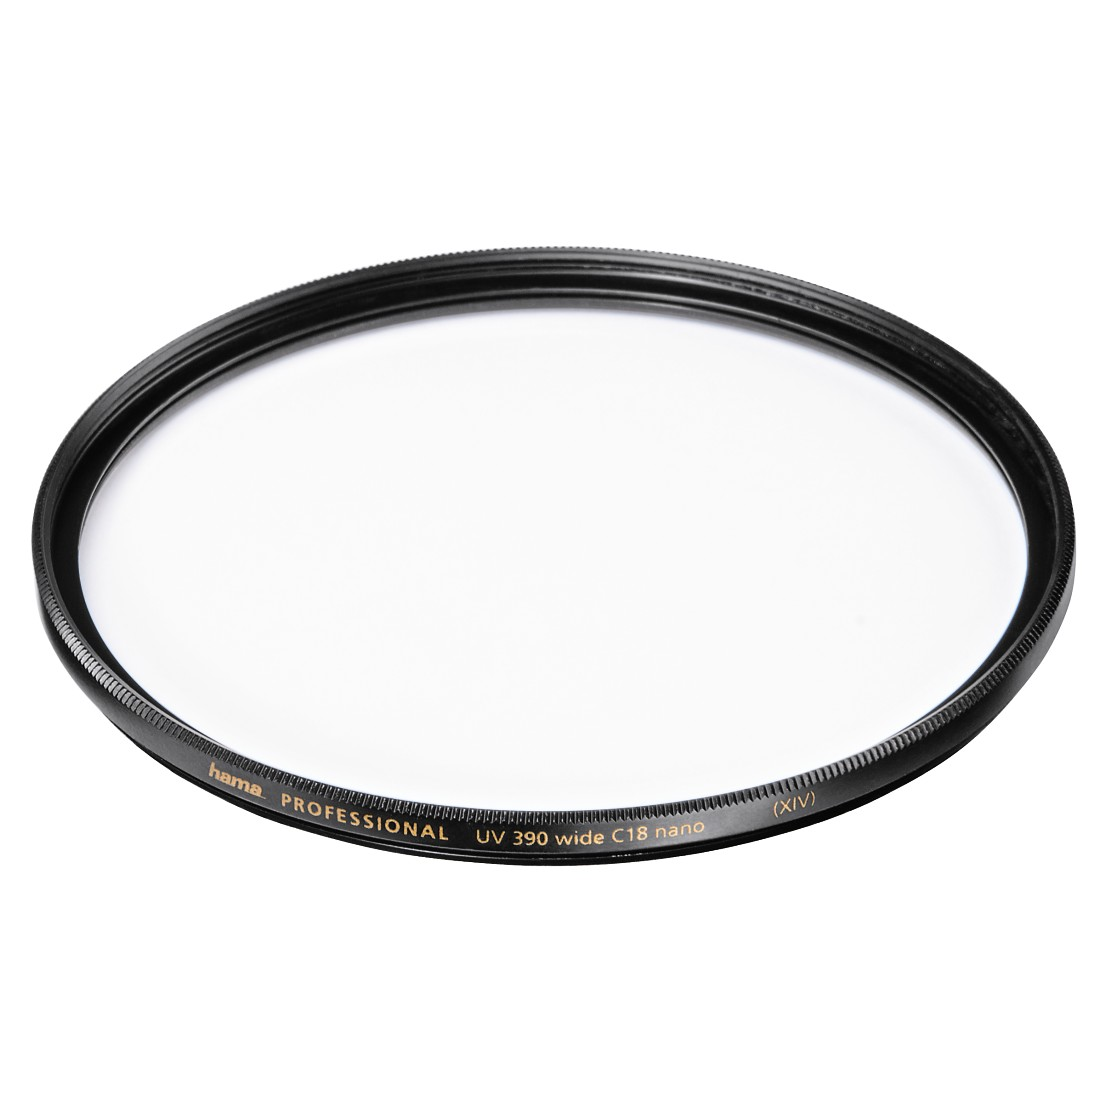 "abx High-Res Image - Hama, ""Professional"" UV Protection Filter, nano multi-coated, Wide 82 mm"